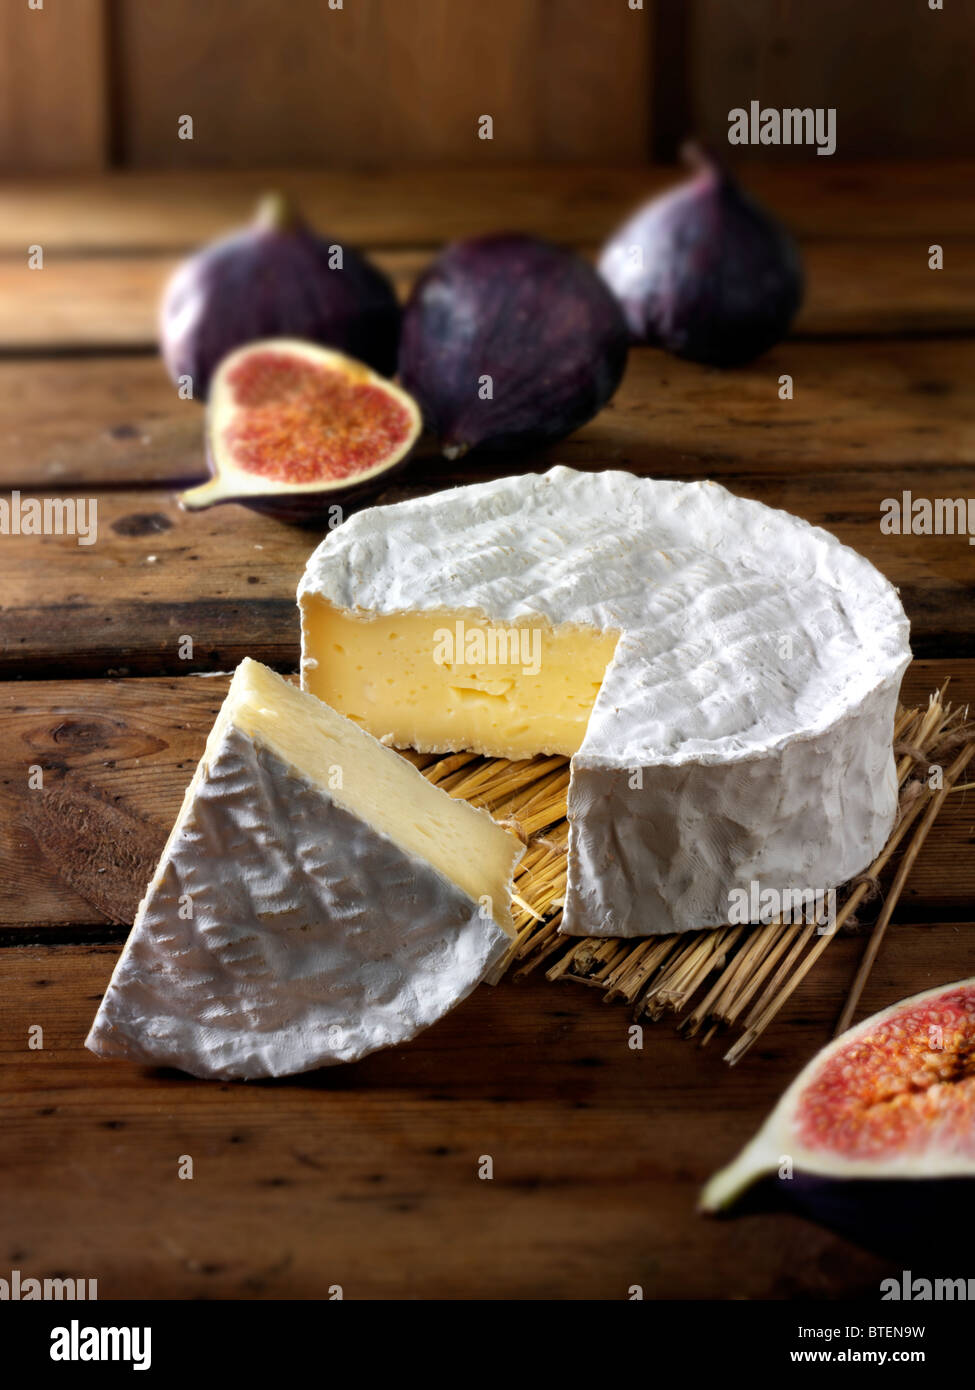 Traditional coulommier French cheese - Stock Image